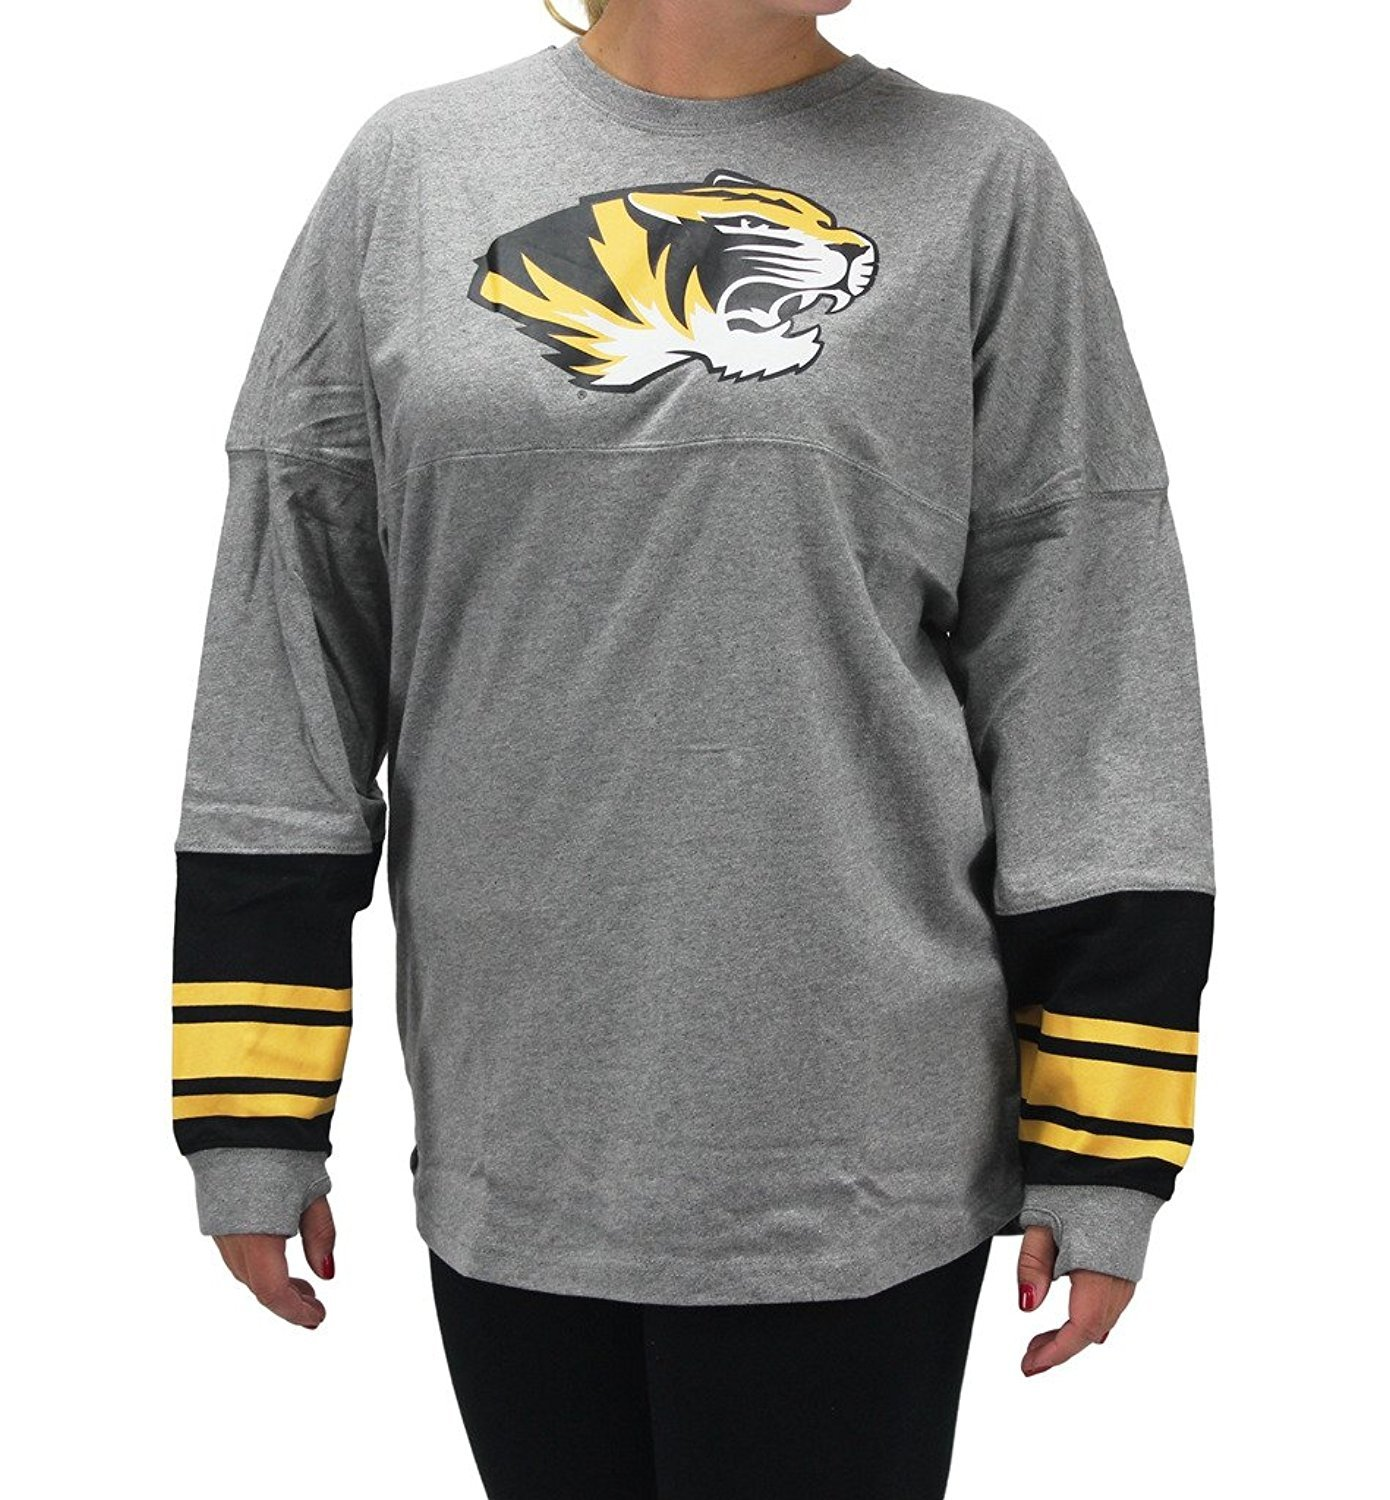 Pressbox Women' s Missouri Tigers Sweeper Grey Shirt